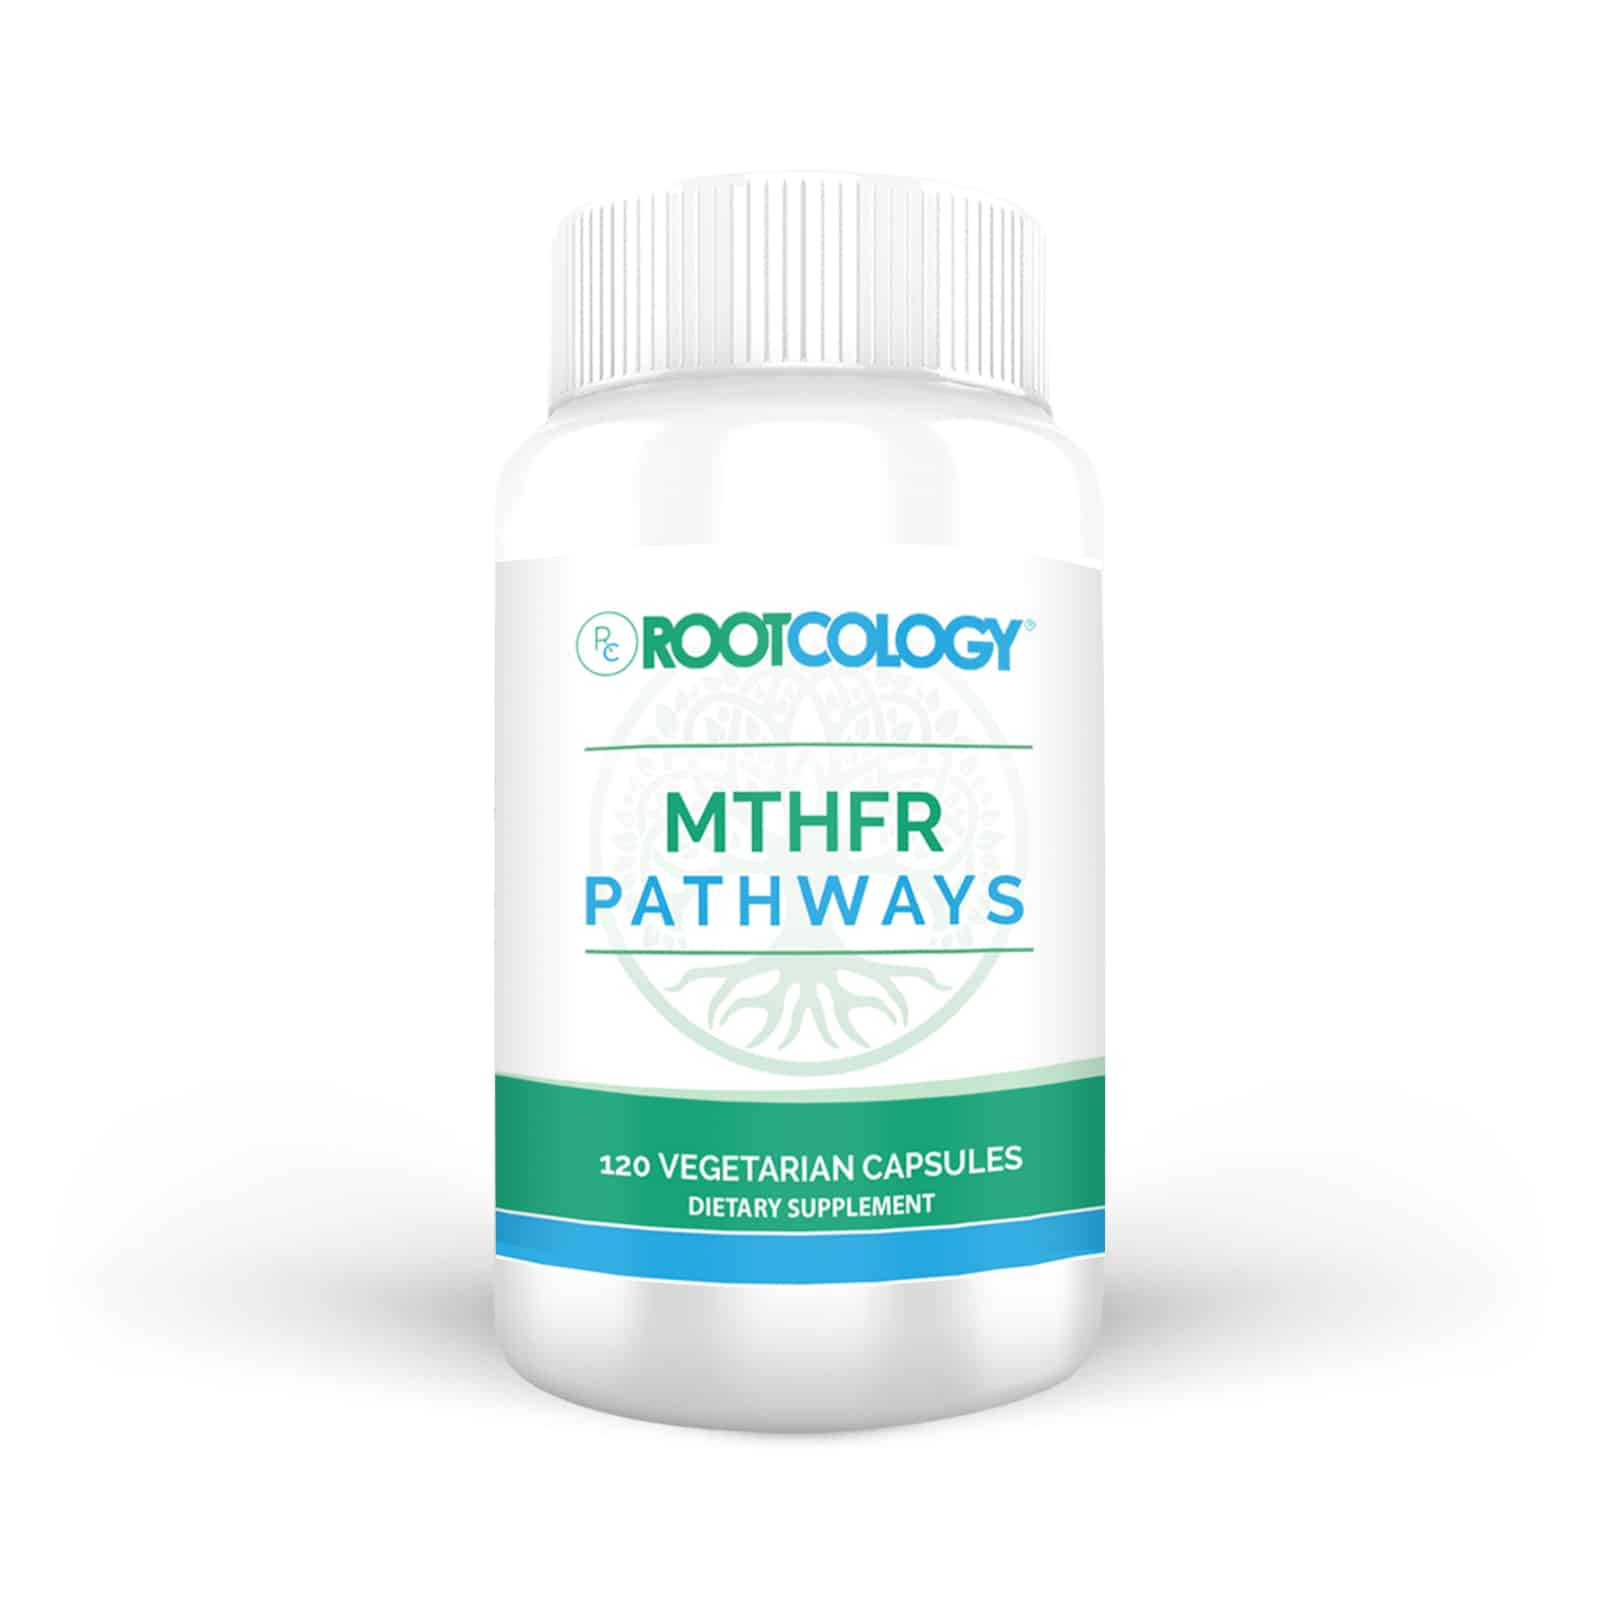 Rootcology MTHFR Pathways